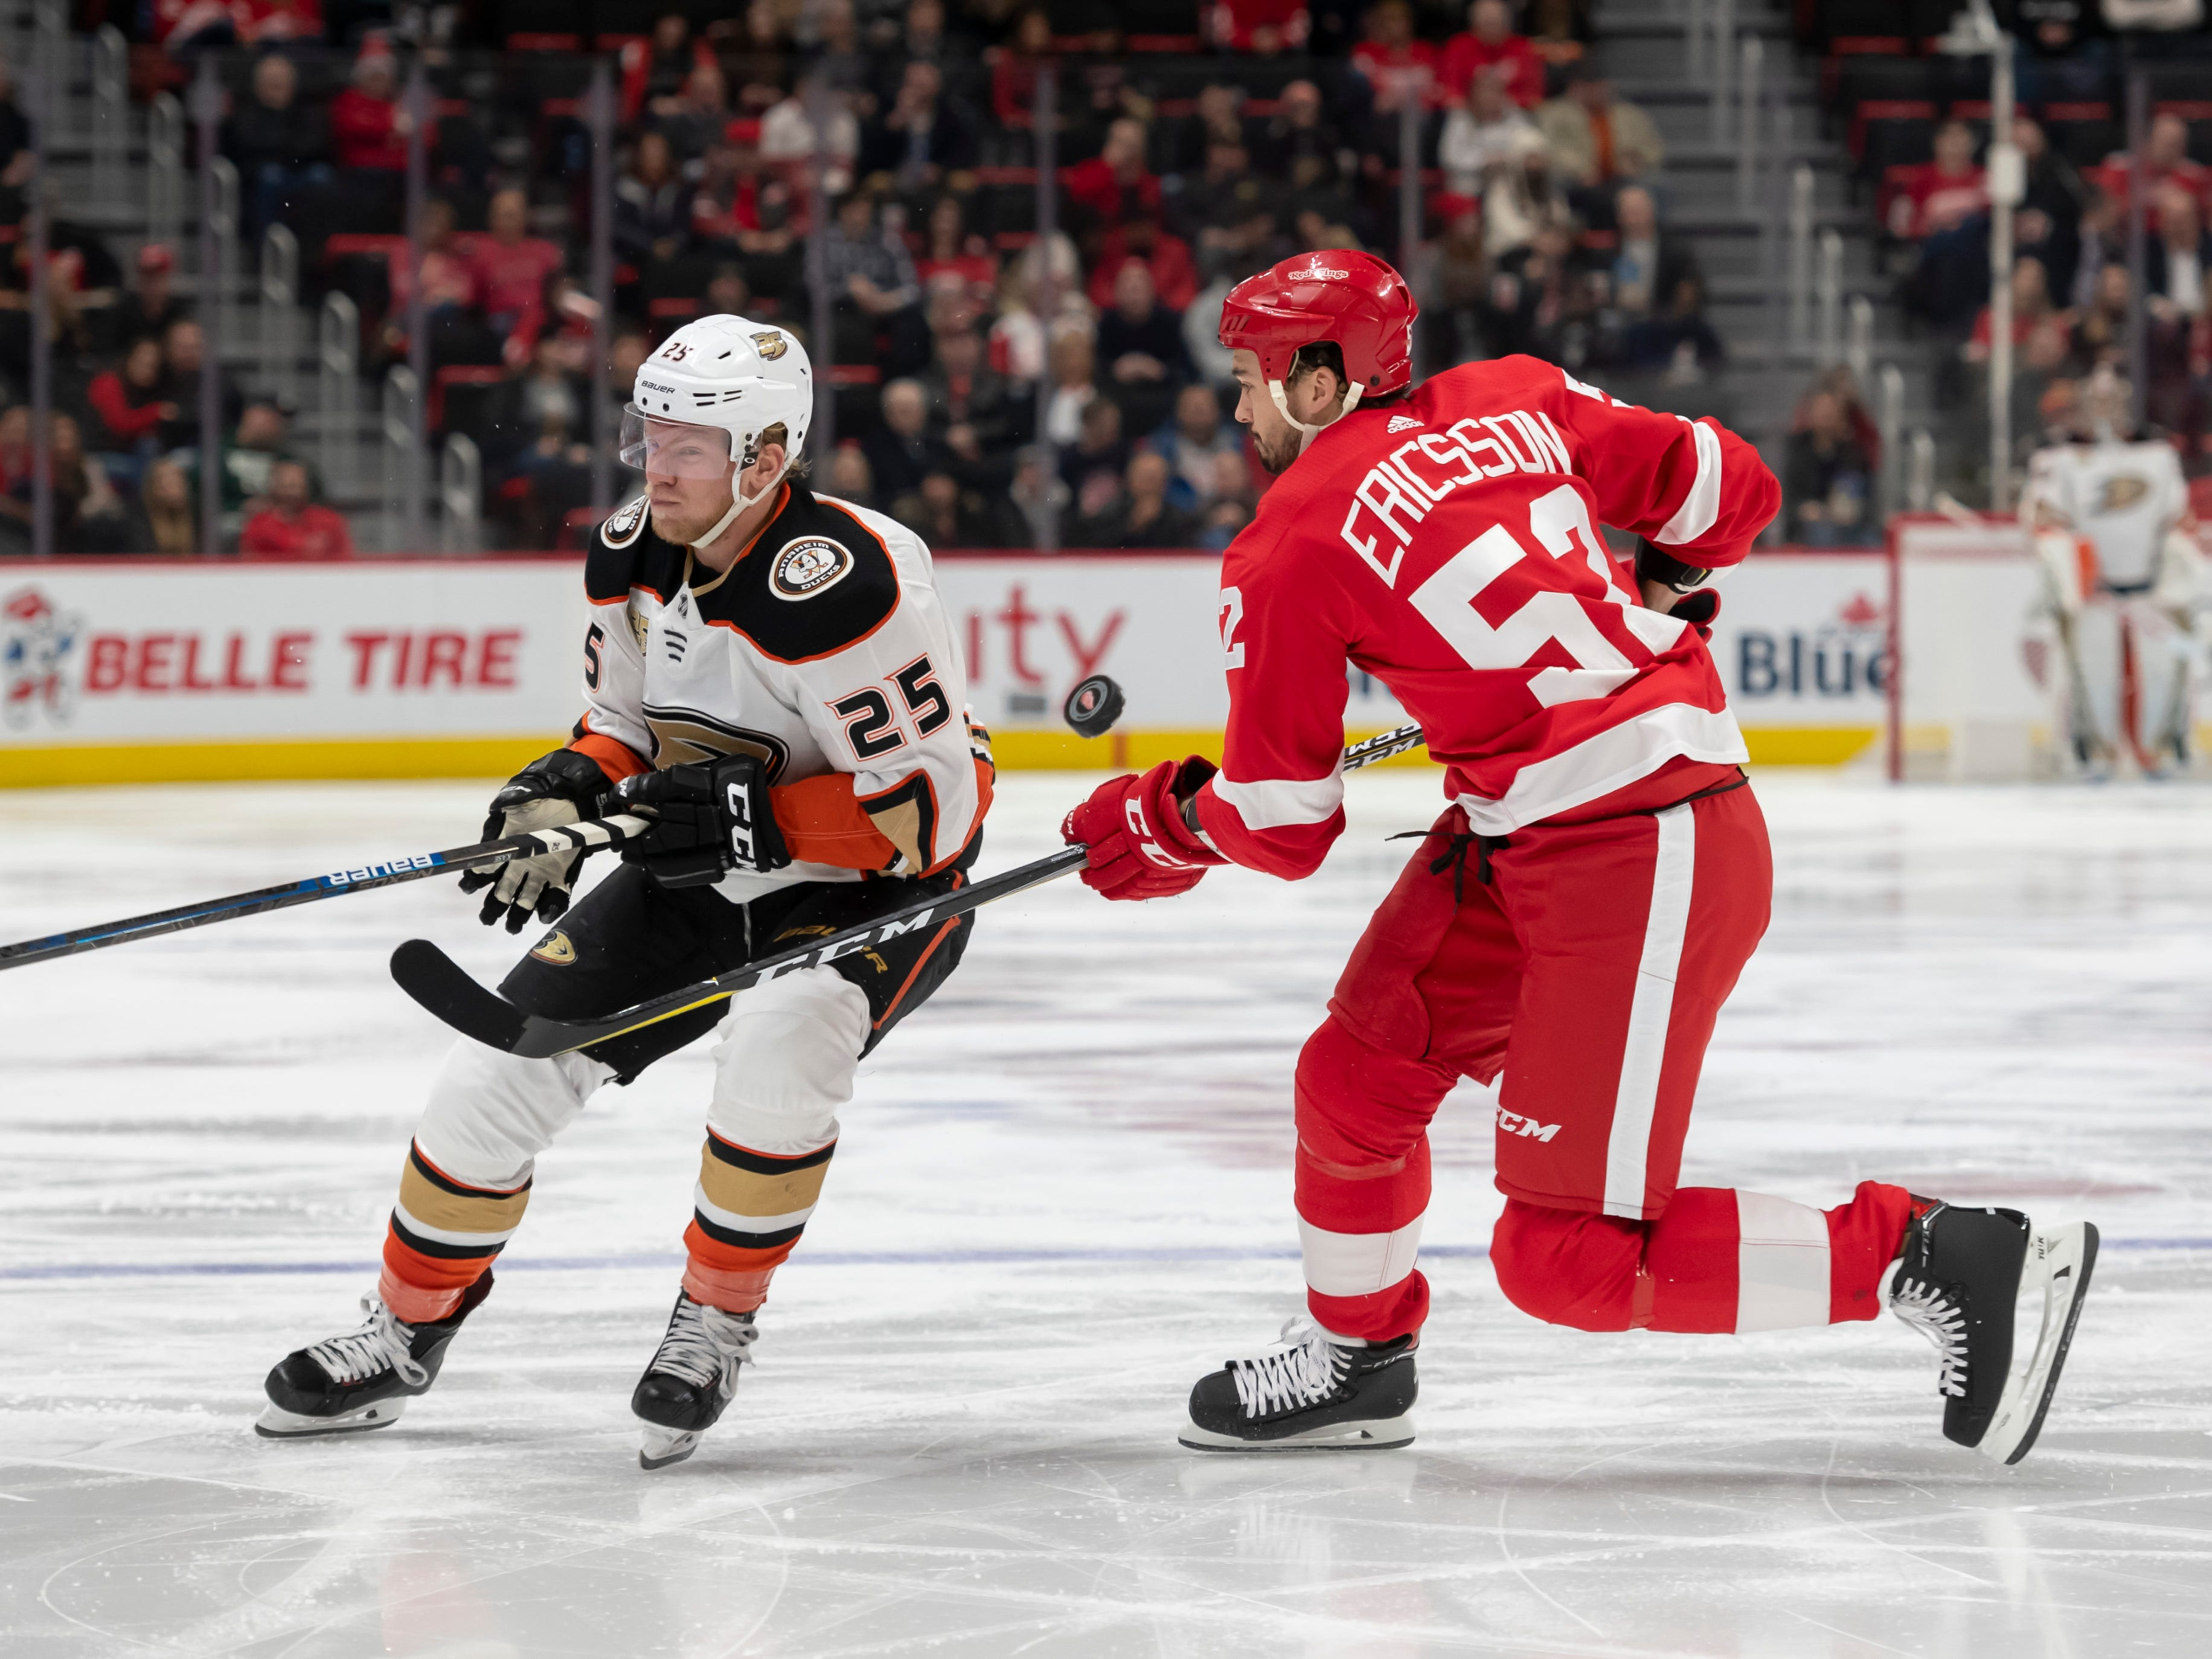 Anaheim right wing Ondrej Kase and Detroit defenseman Jonathan Ericsson battle for the puck in the second period.